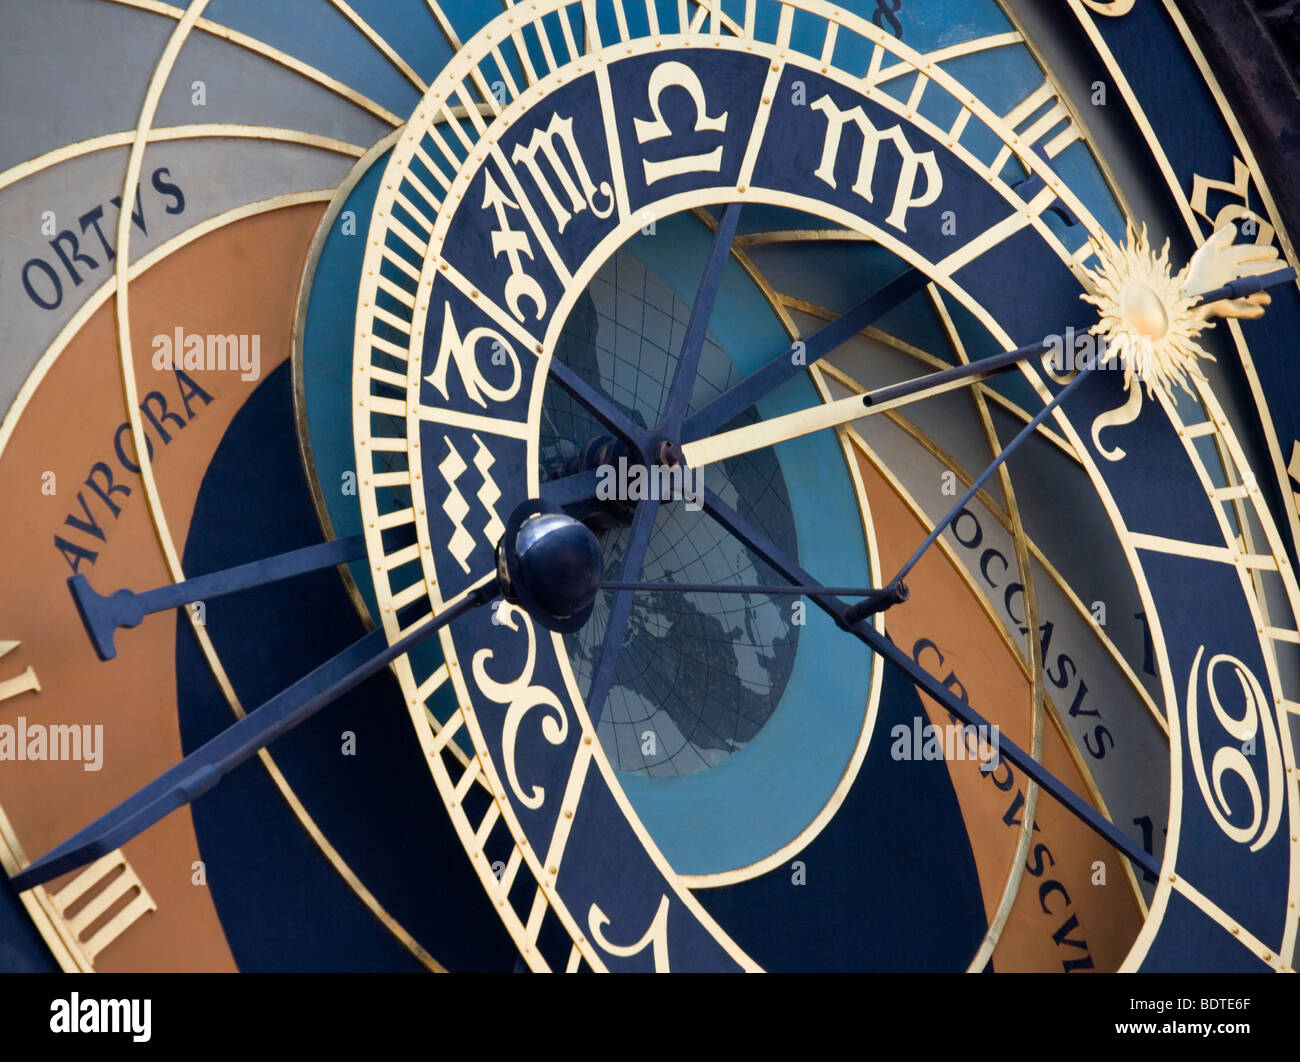 Astronomical Clock on Old Town Square in Prague, Czech Republic. - Stock Image